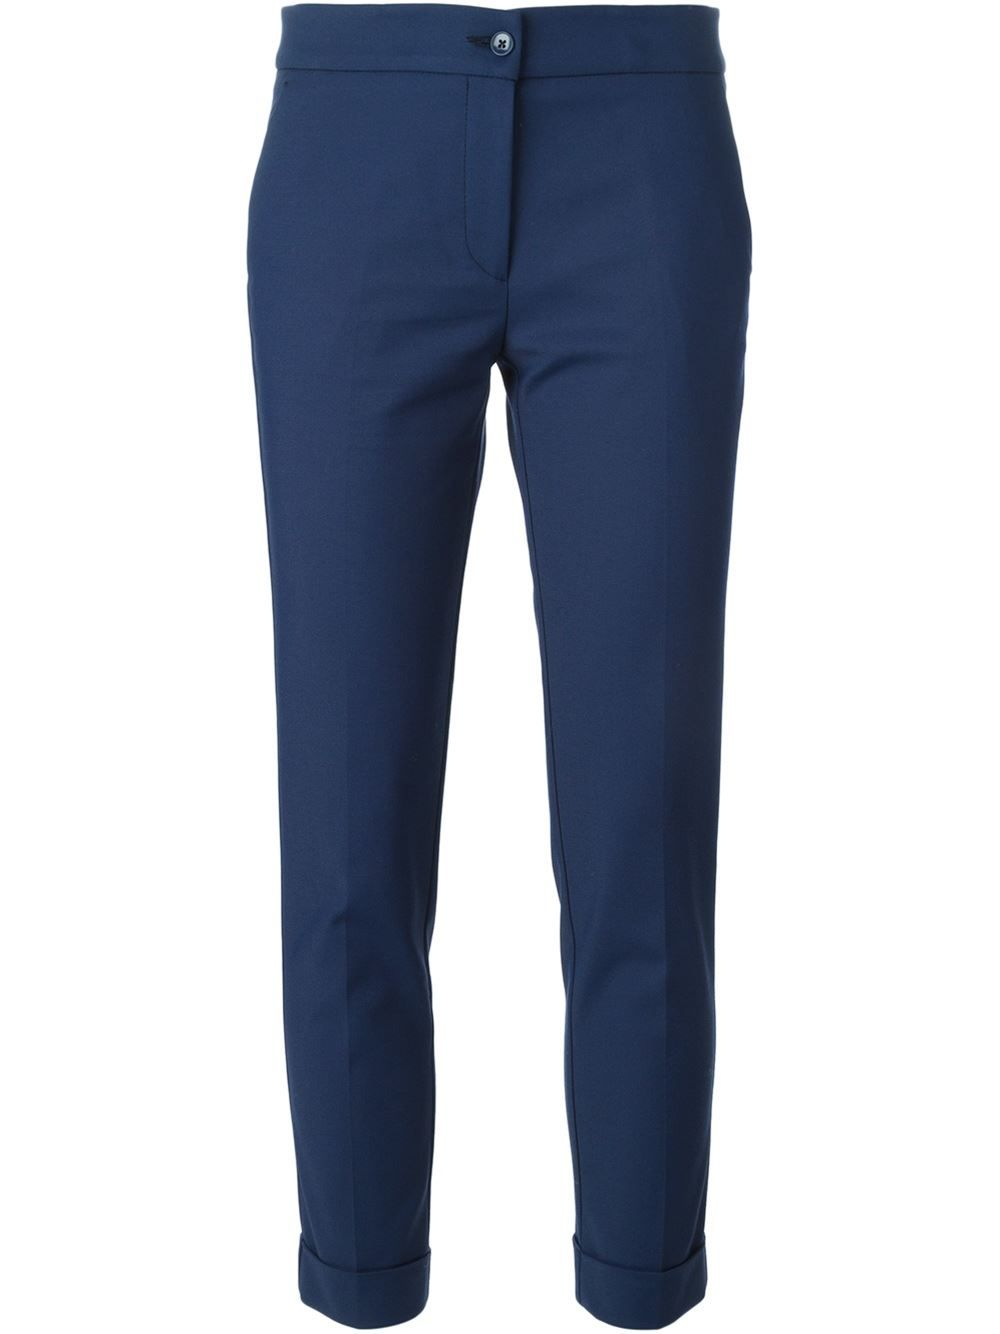 cropped slim-fit trousers - Blue Etro Cheap Manchester Knock Off Cheap Sale Pictures Cheap Discount Authentic Outlet Fashionable kGYhI5XQg